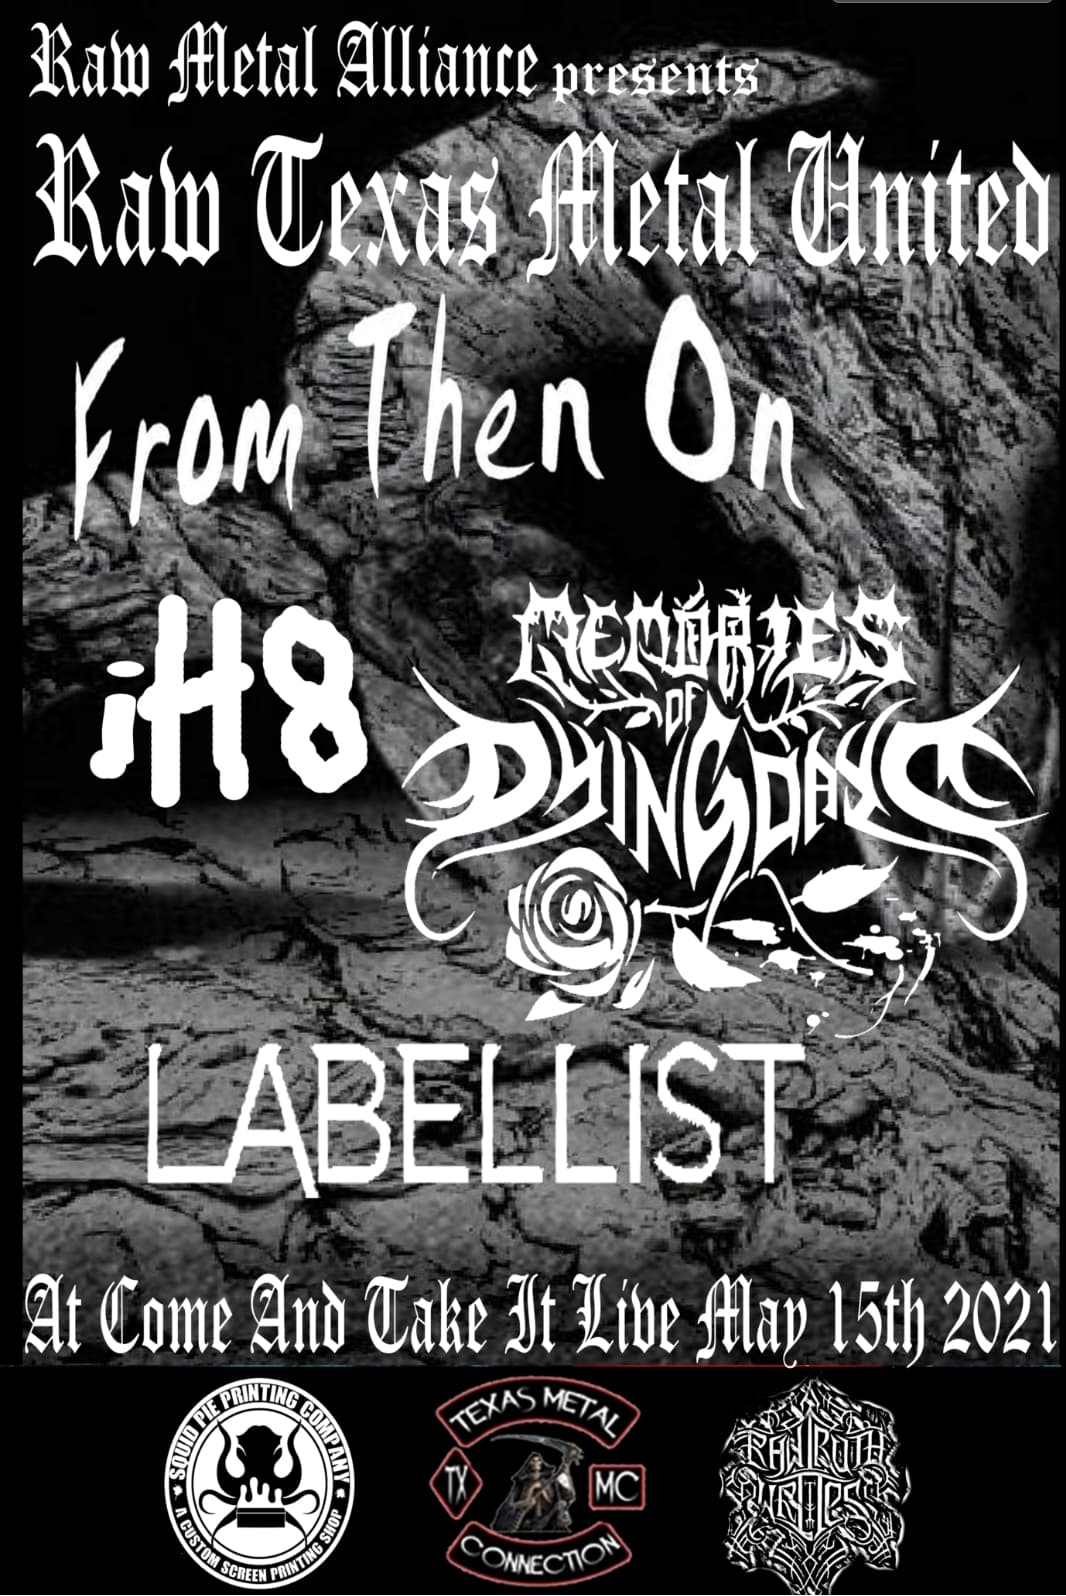 From Then On, IH8, Memories of Dying Days and Labellist at Come and Take It Live